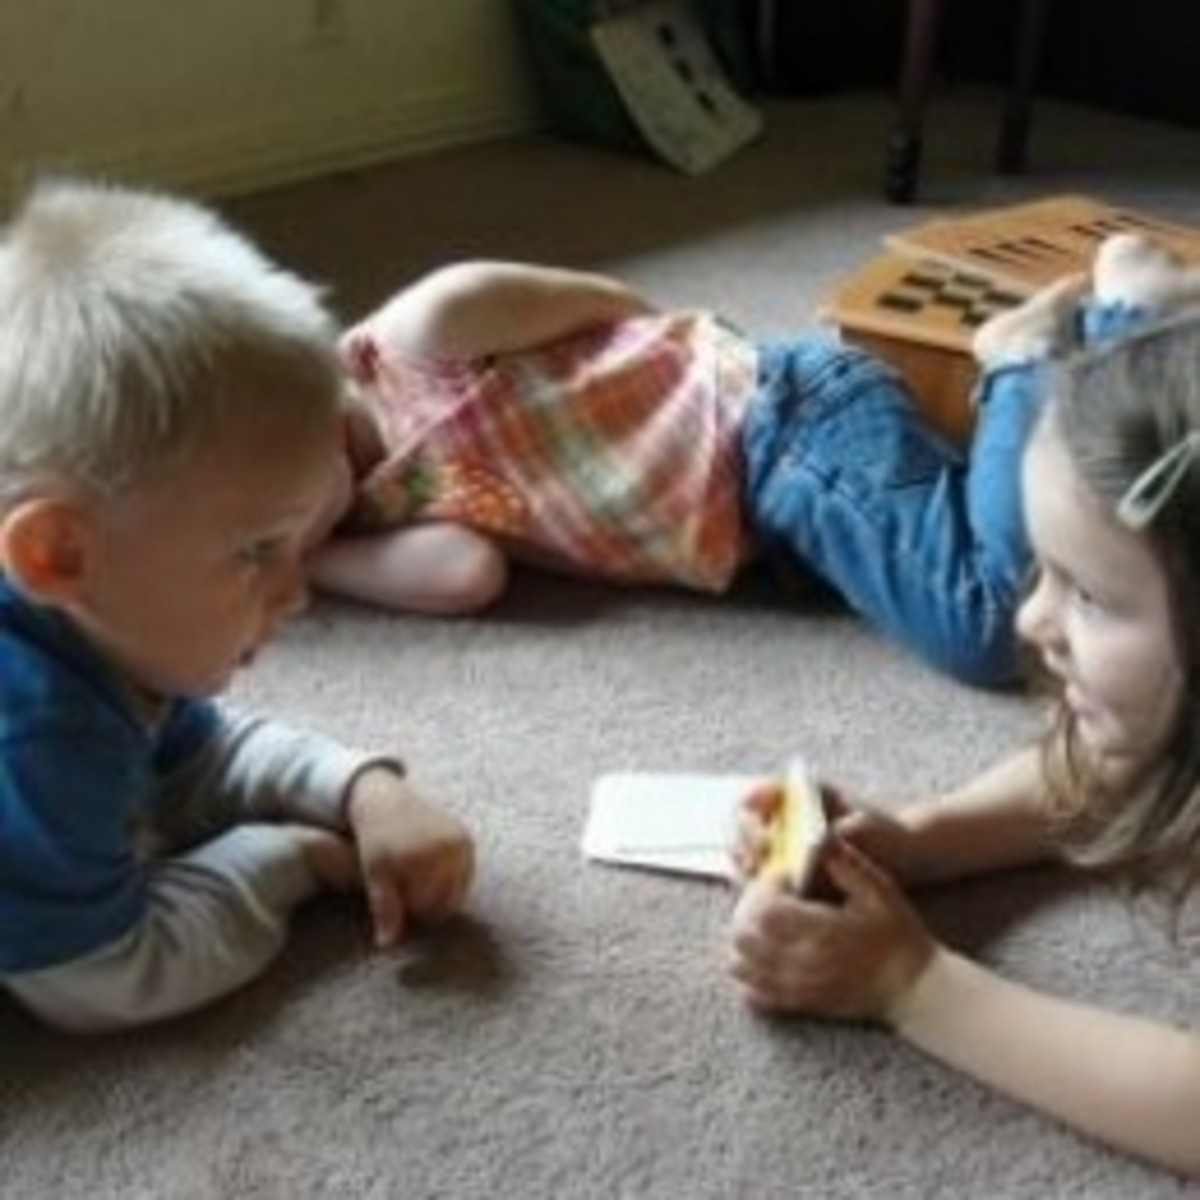 Occupying toddlers and babies while homeschooling: Taming Toddler Tornadoes